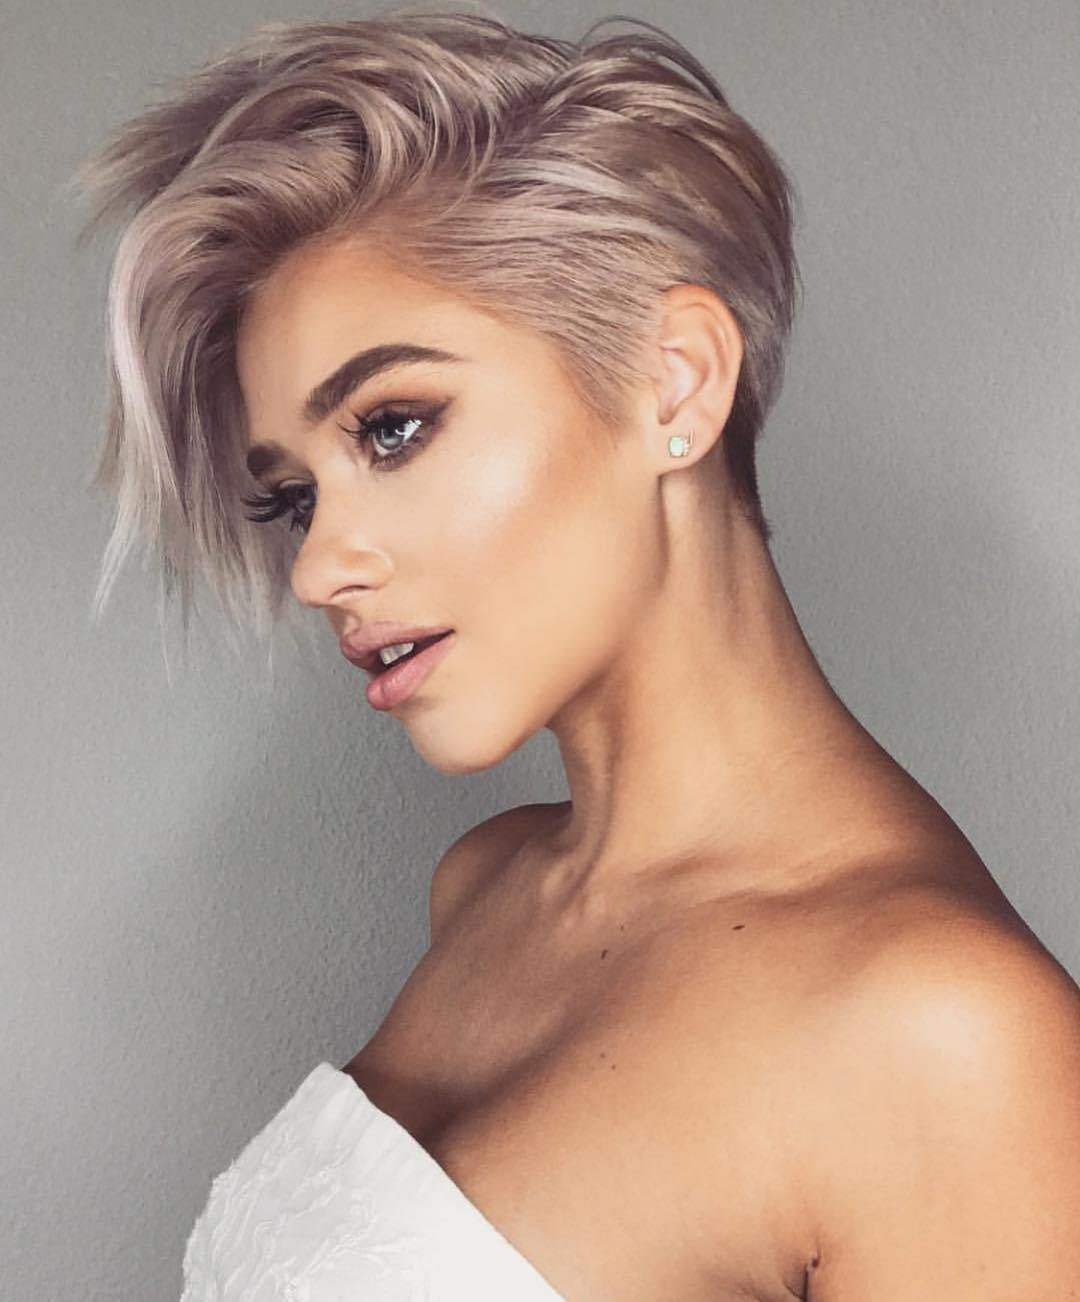 New 10 Trendy Very Short Haircuts For Female Cool Short Hair Ideas With Pictures